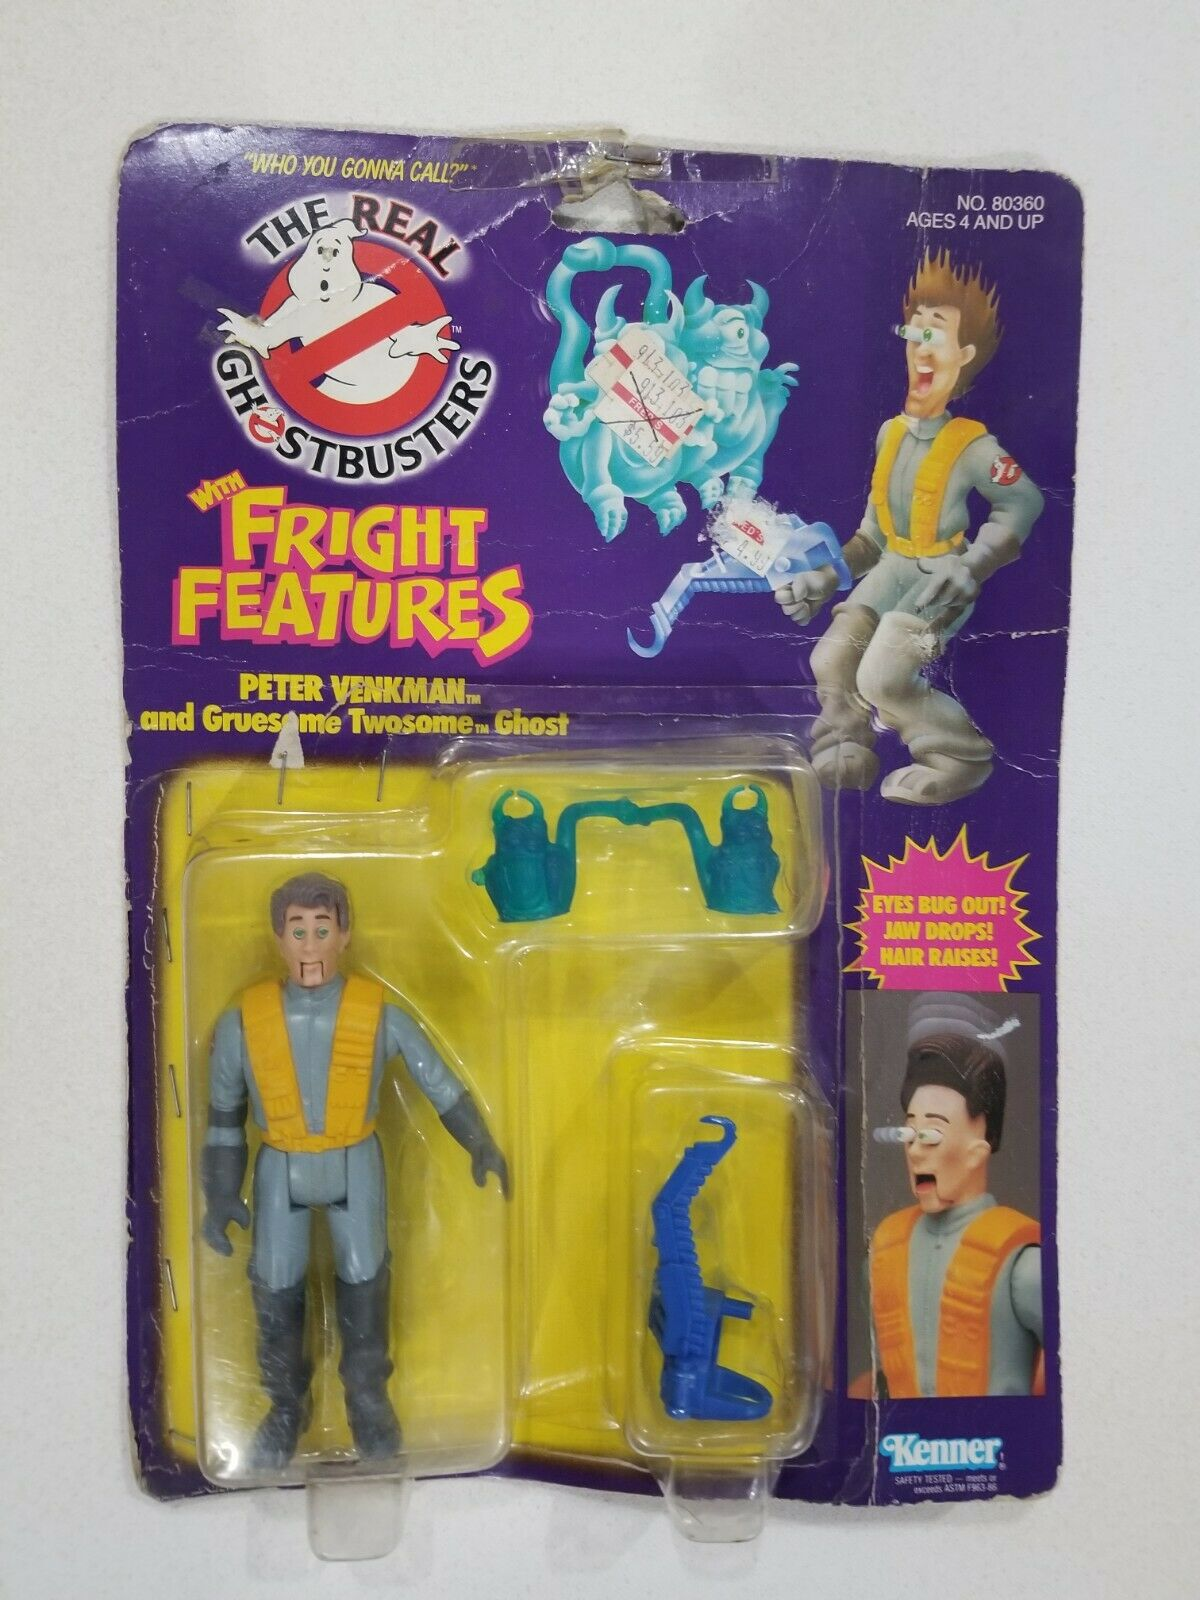 1986 KENNER REAL GHOSTBUSTERS FRIGHT FEATURES PETER VENKMAN FIGURE SEALED